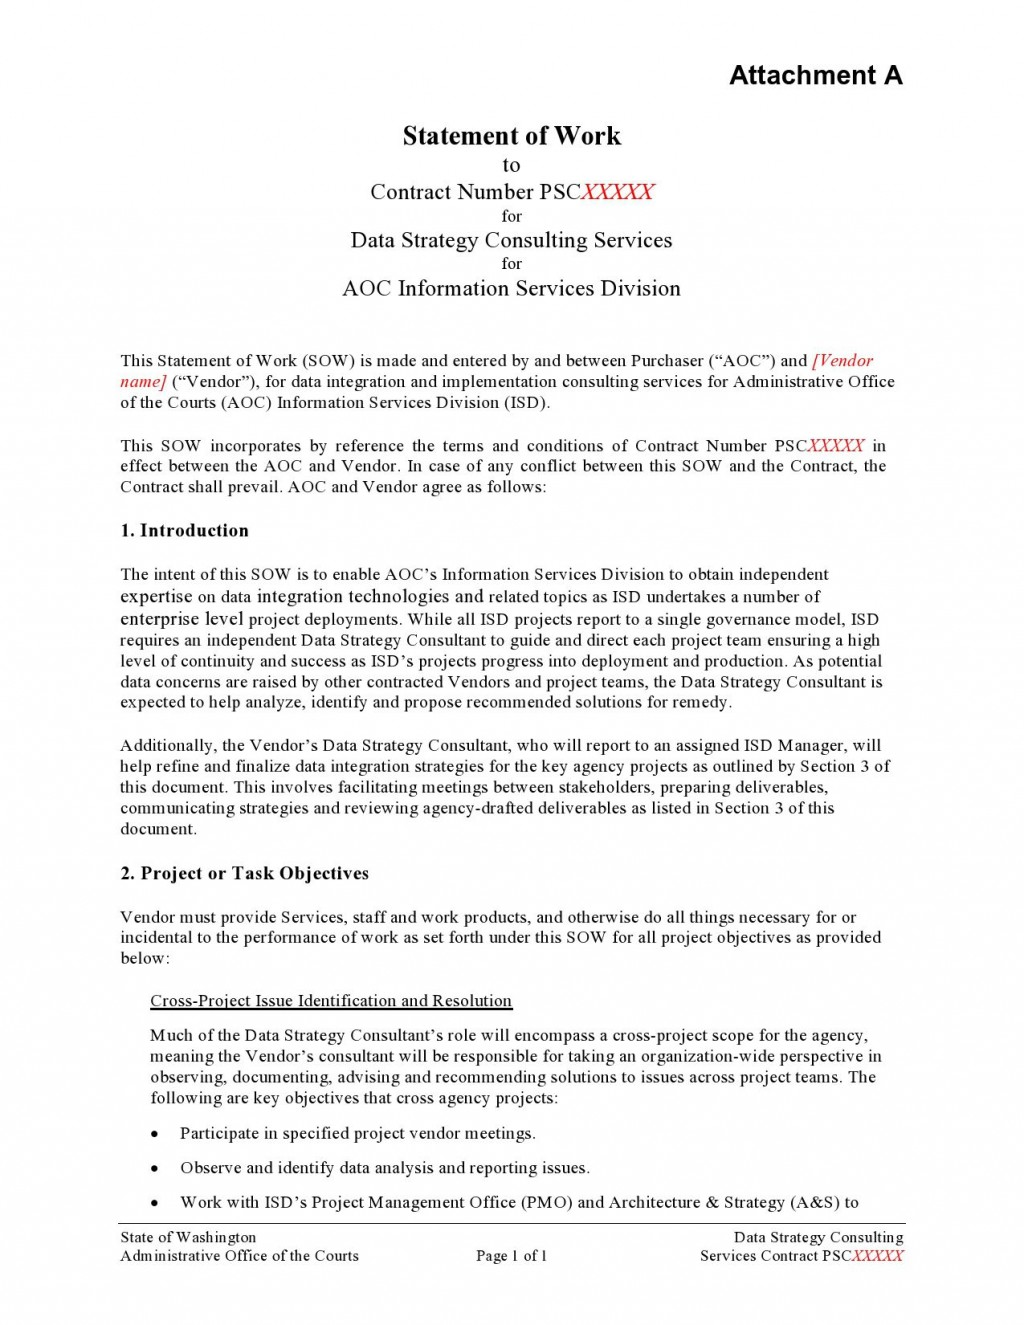 009 Impressive Sample Statement Of Work Consulting Service Highest Quality Large